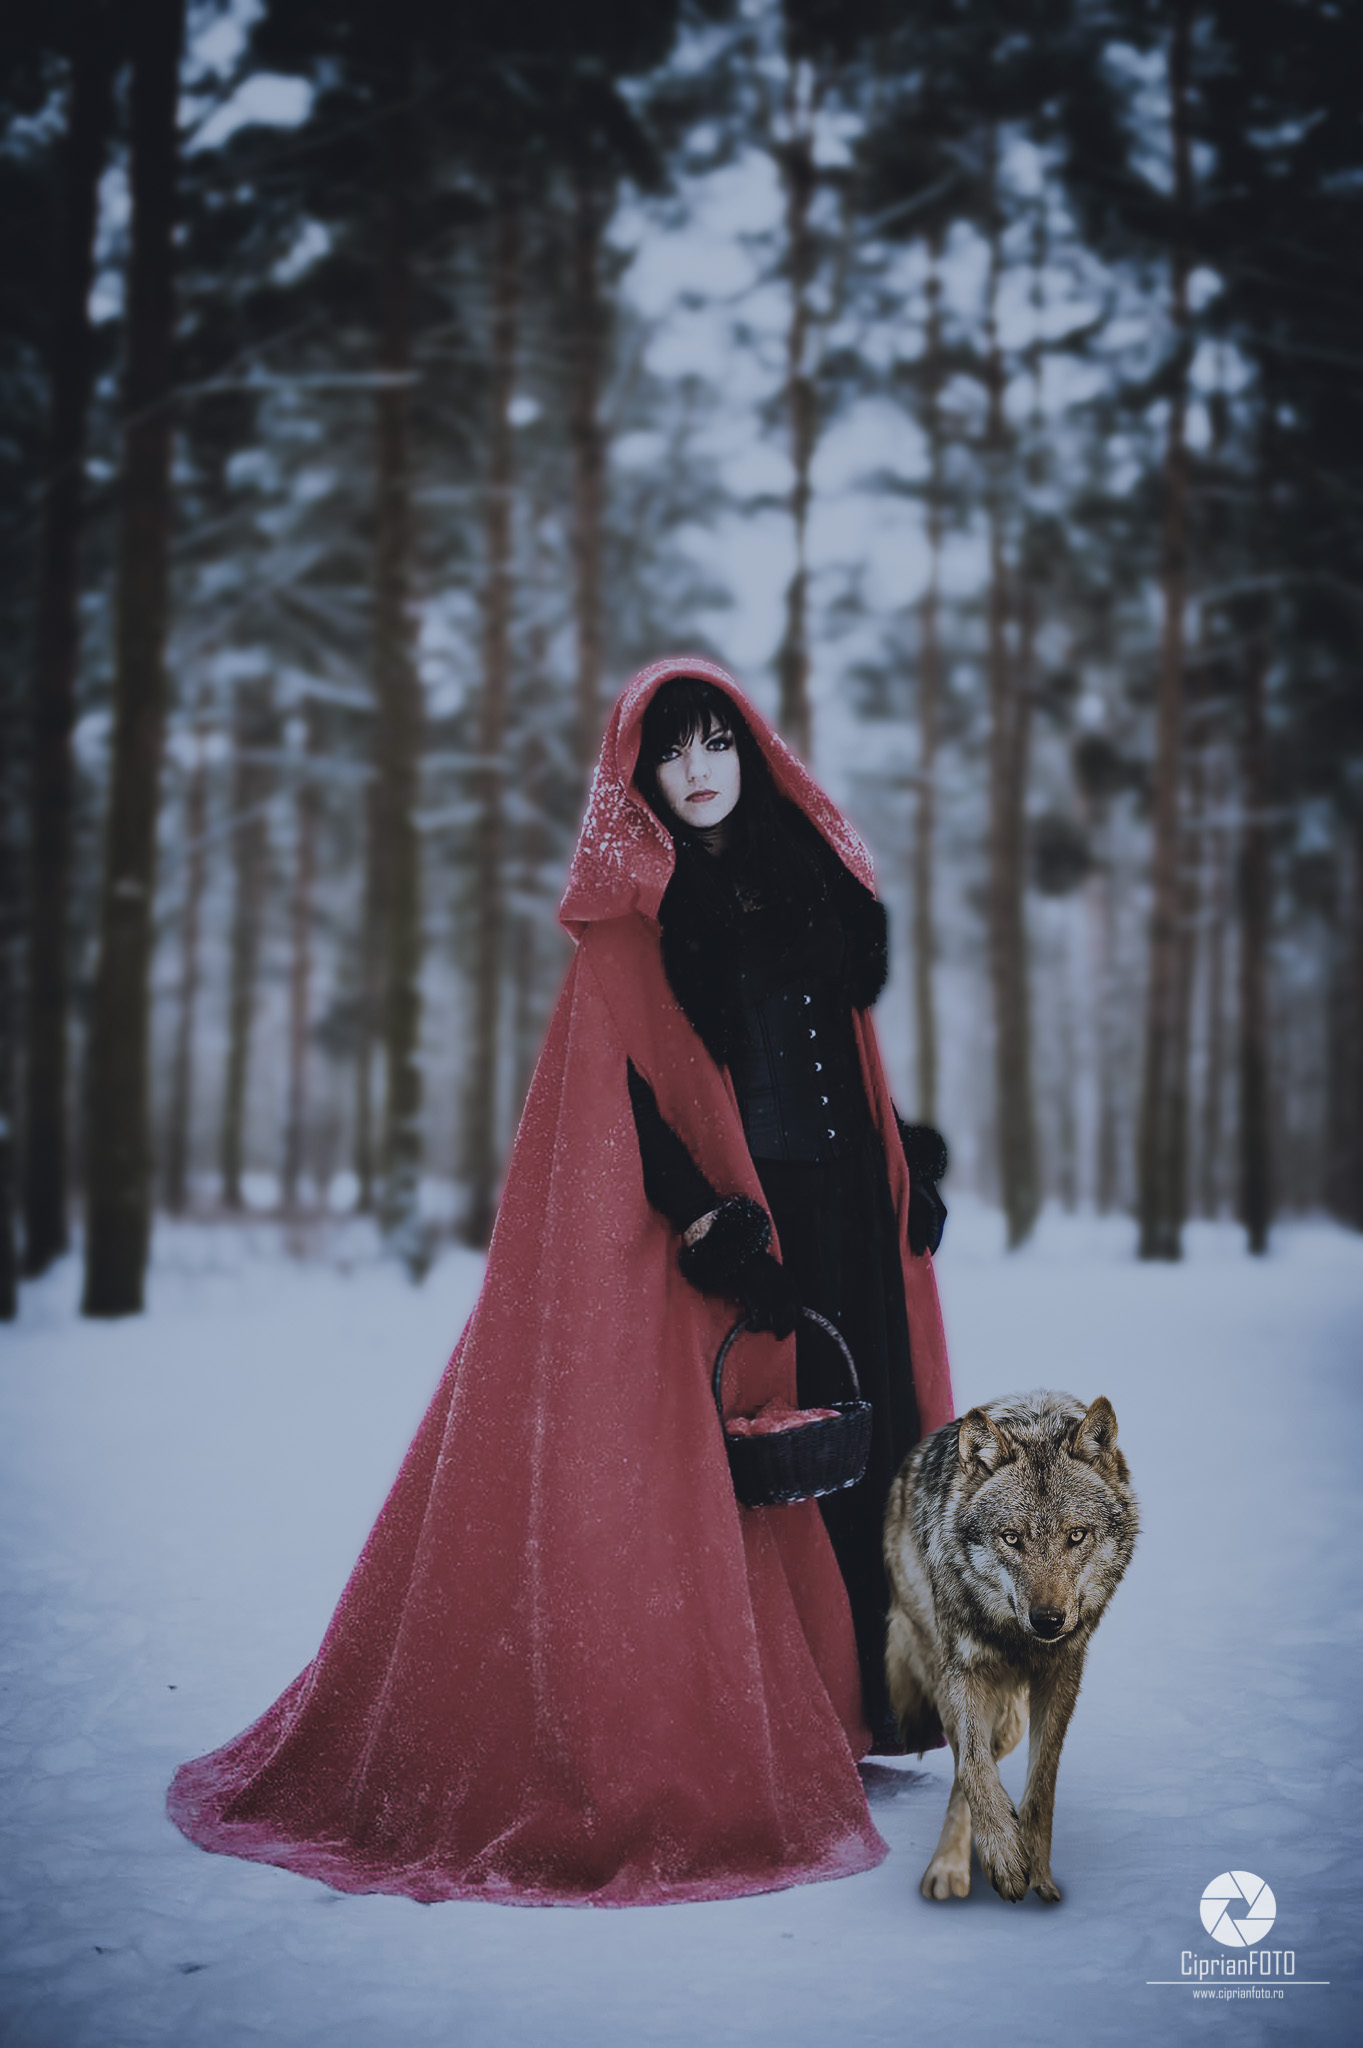 Red Riding Hood And Wolf, Photoshop Manipulation Tutorial, CiprianFOTO